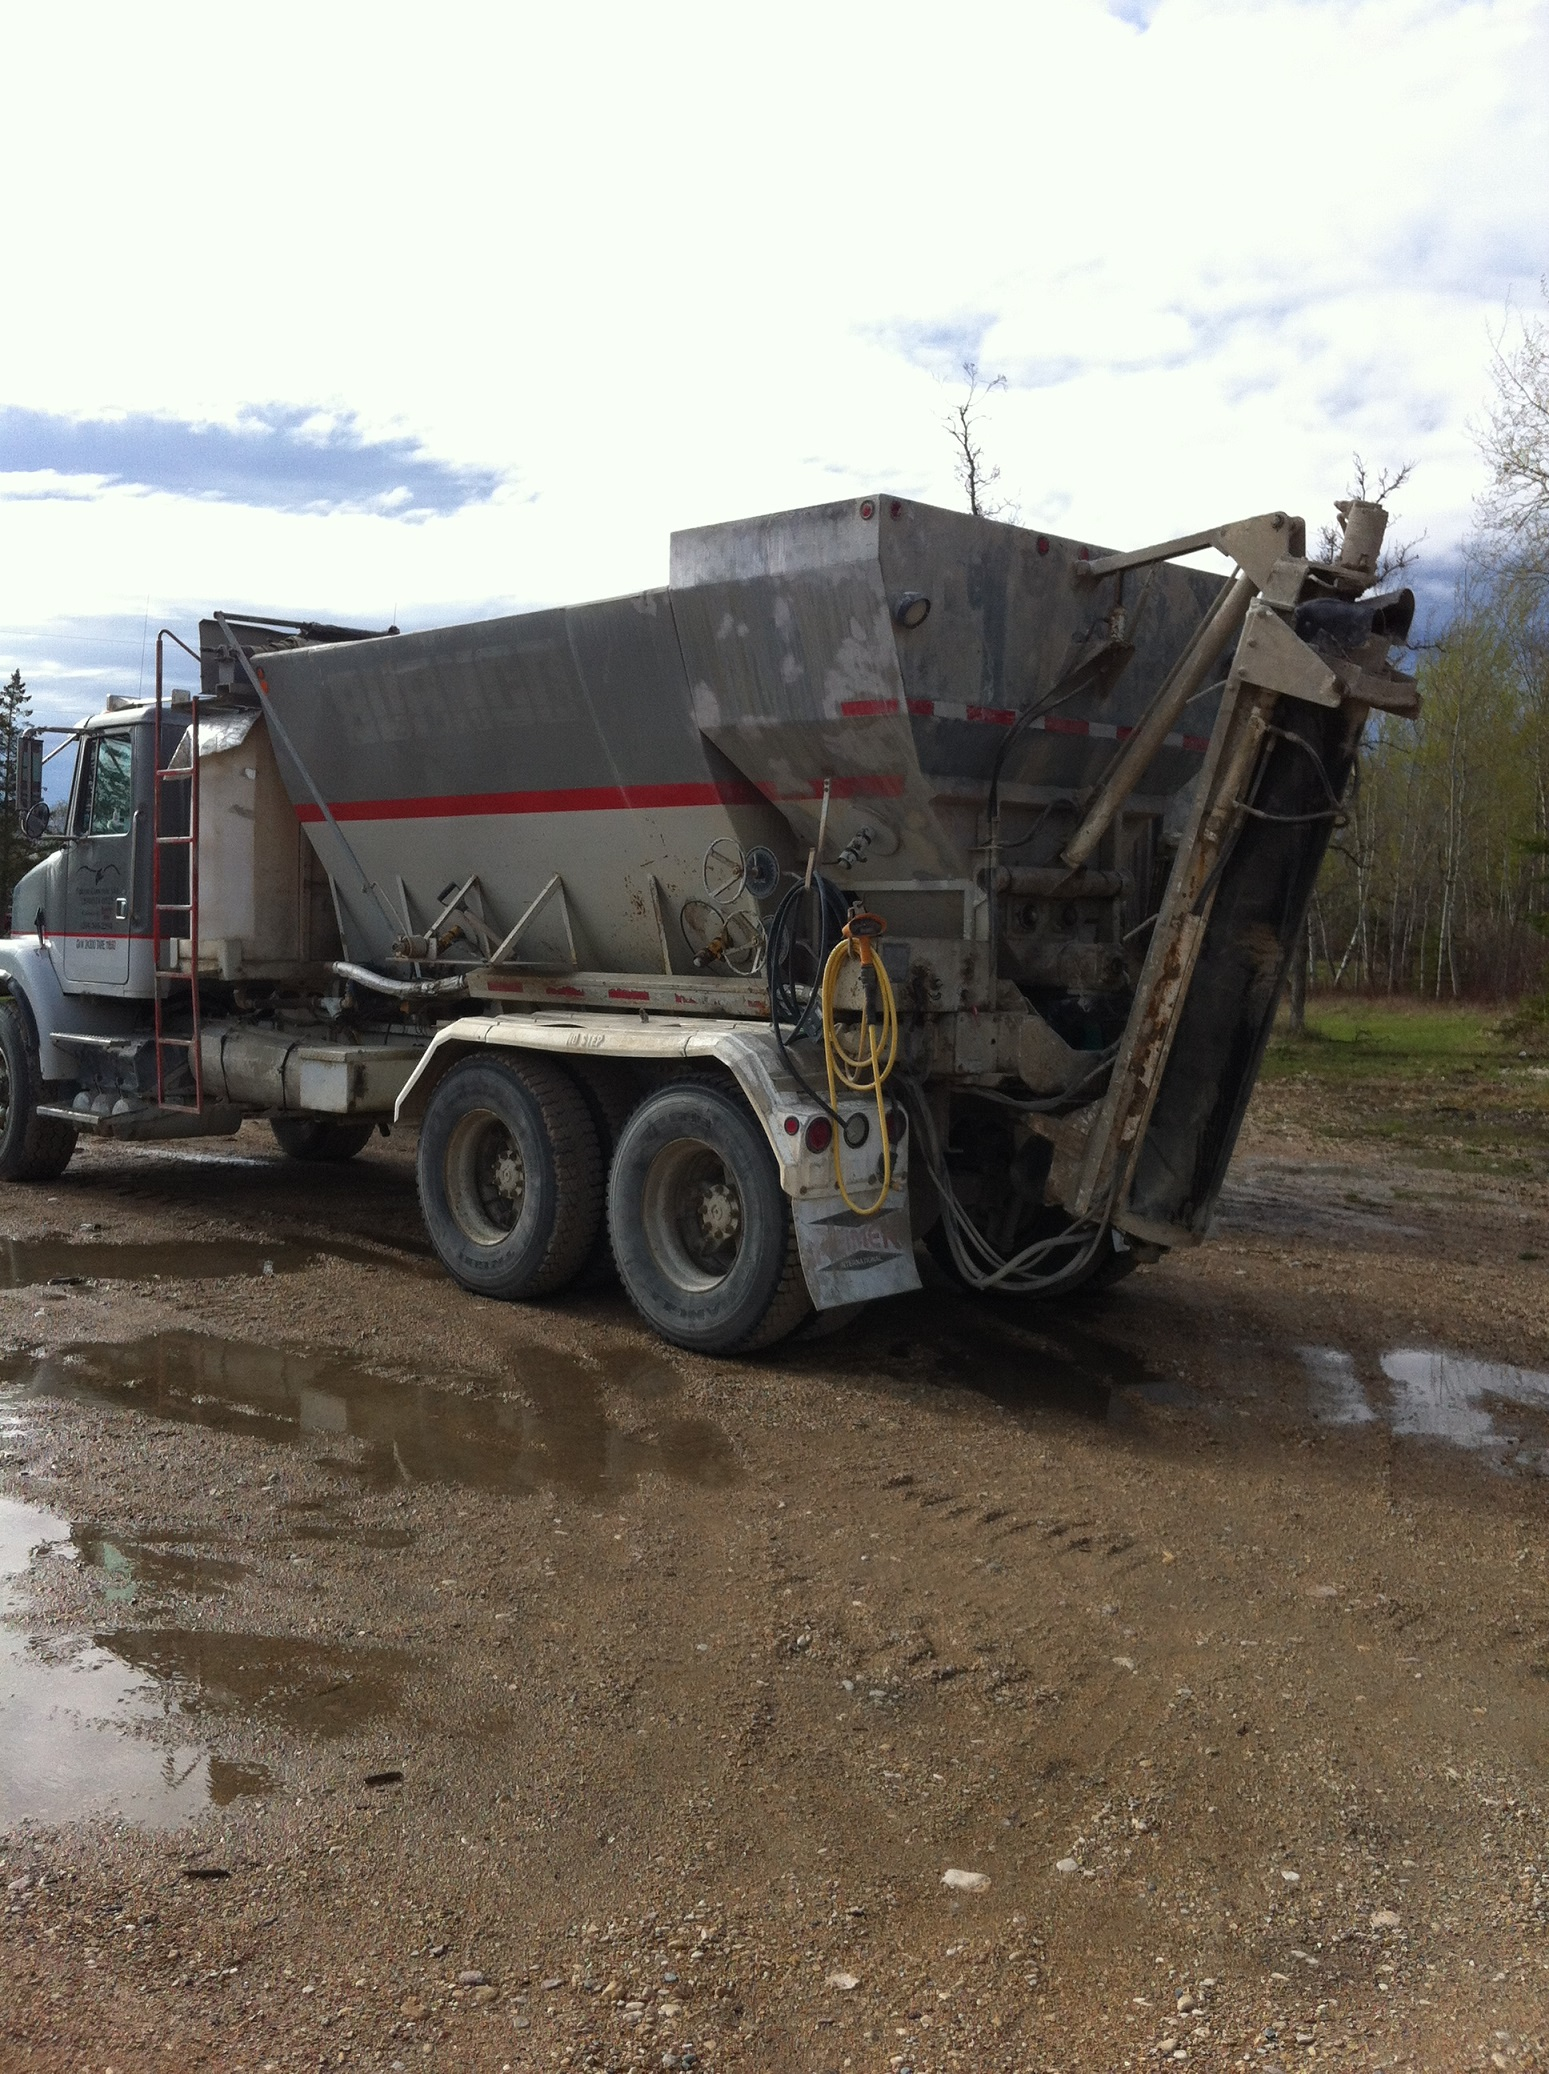 Ready-mxied concrete mixing truck